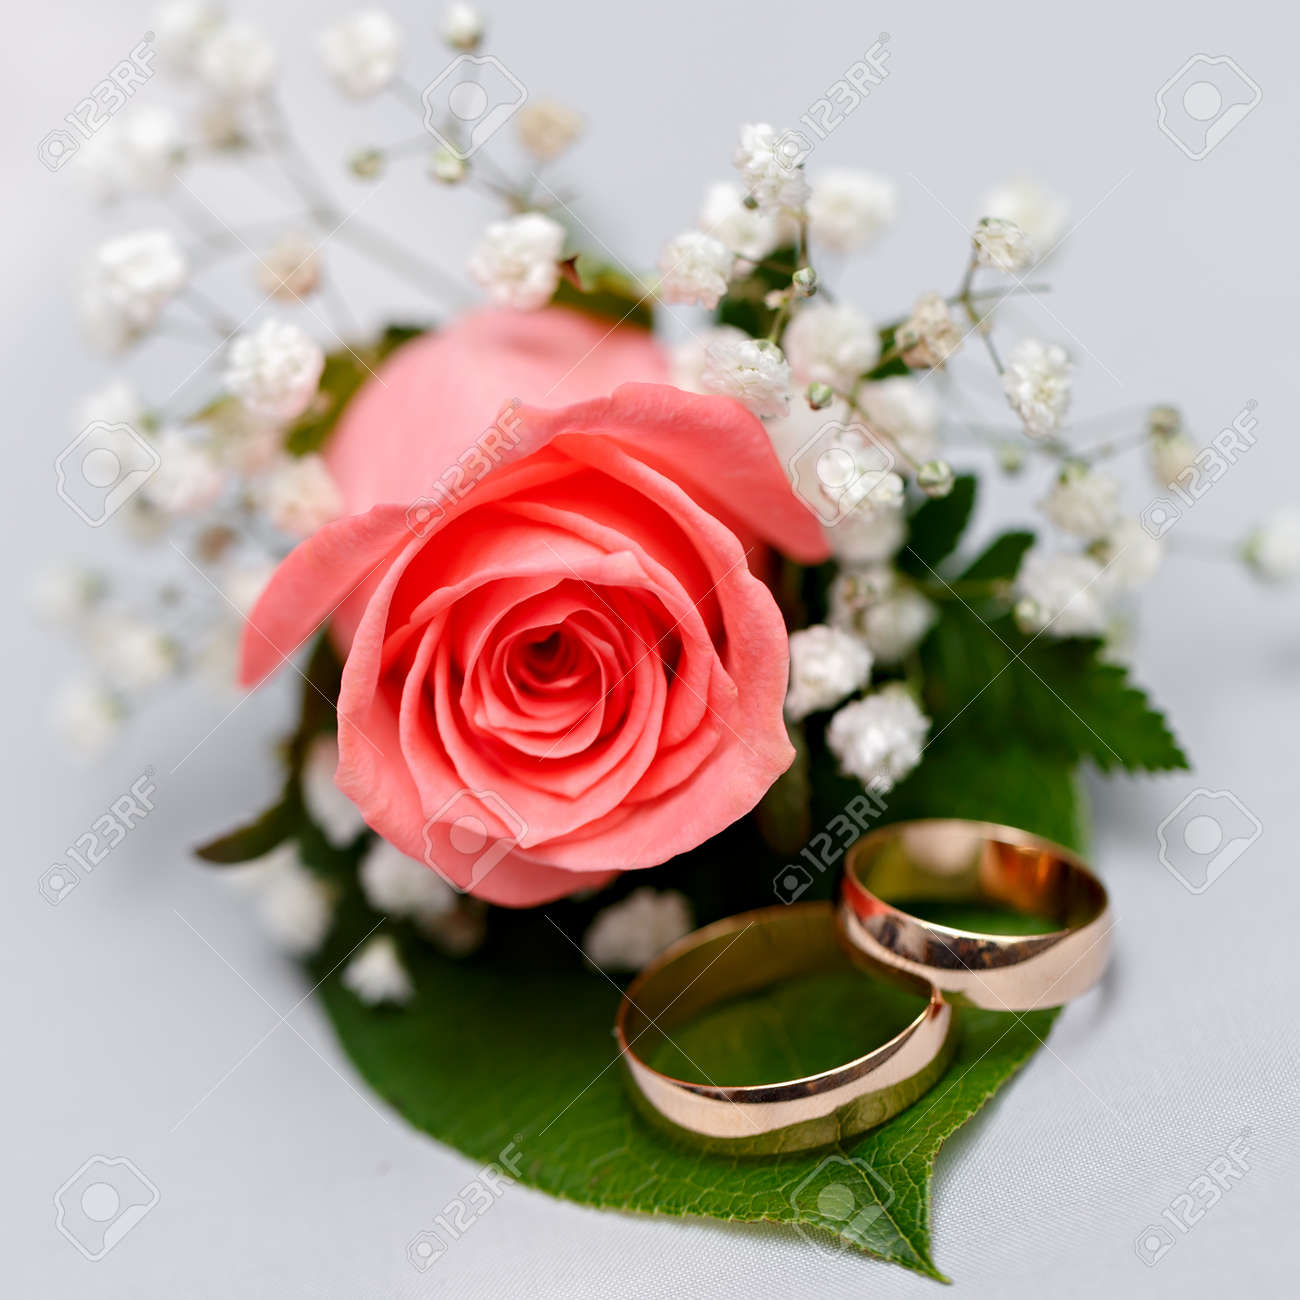 Gold Wedding Rings On A Bouquet Of Flowers For The Bride Stock Photo ...